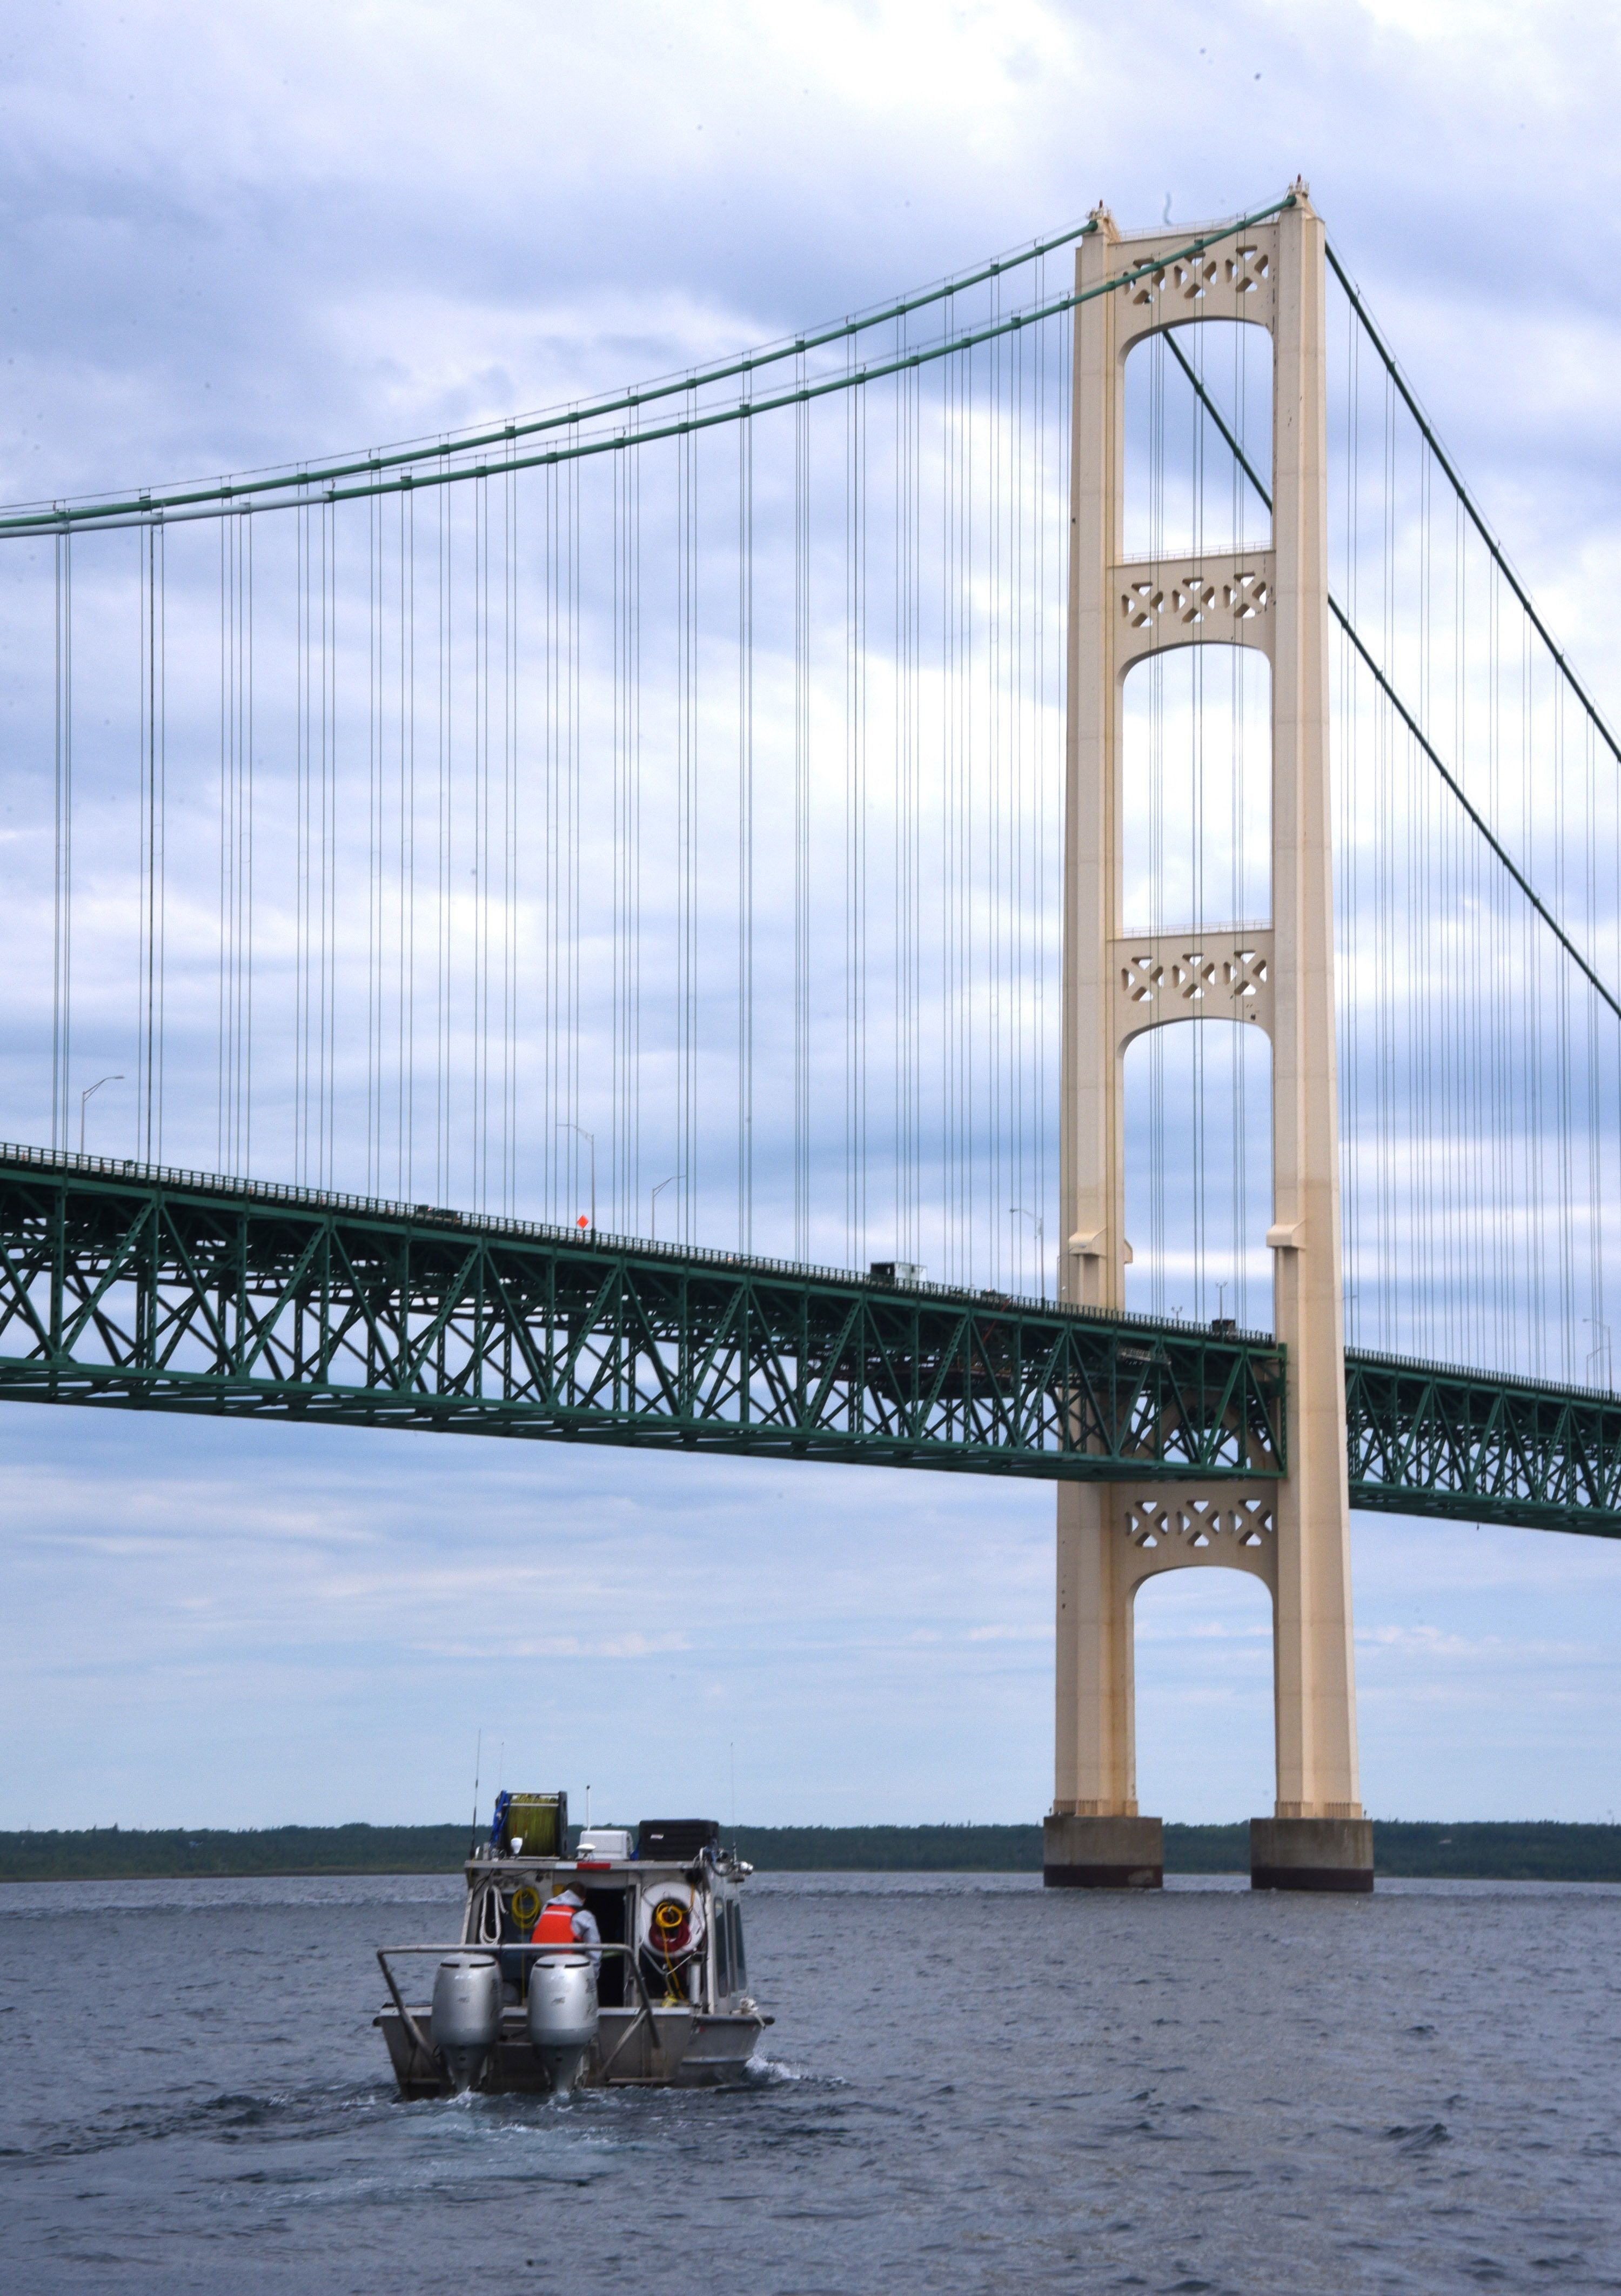 Oil pipeline operator Enbridge moves under the Mackinac Bridge on their way to inspect their controversial Line 5 under the Straits of Mackinac on June 8, 2016.